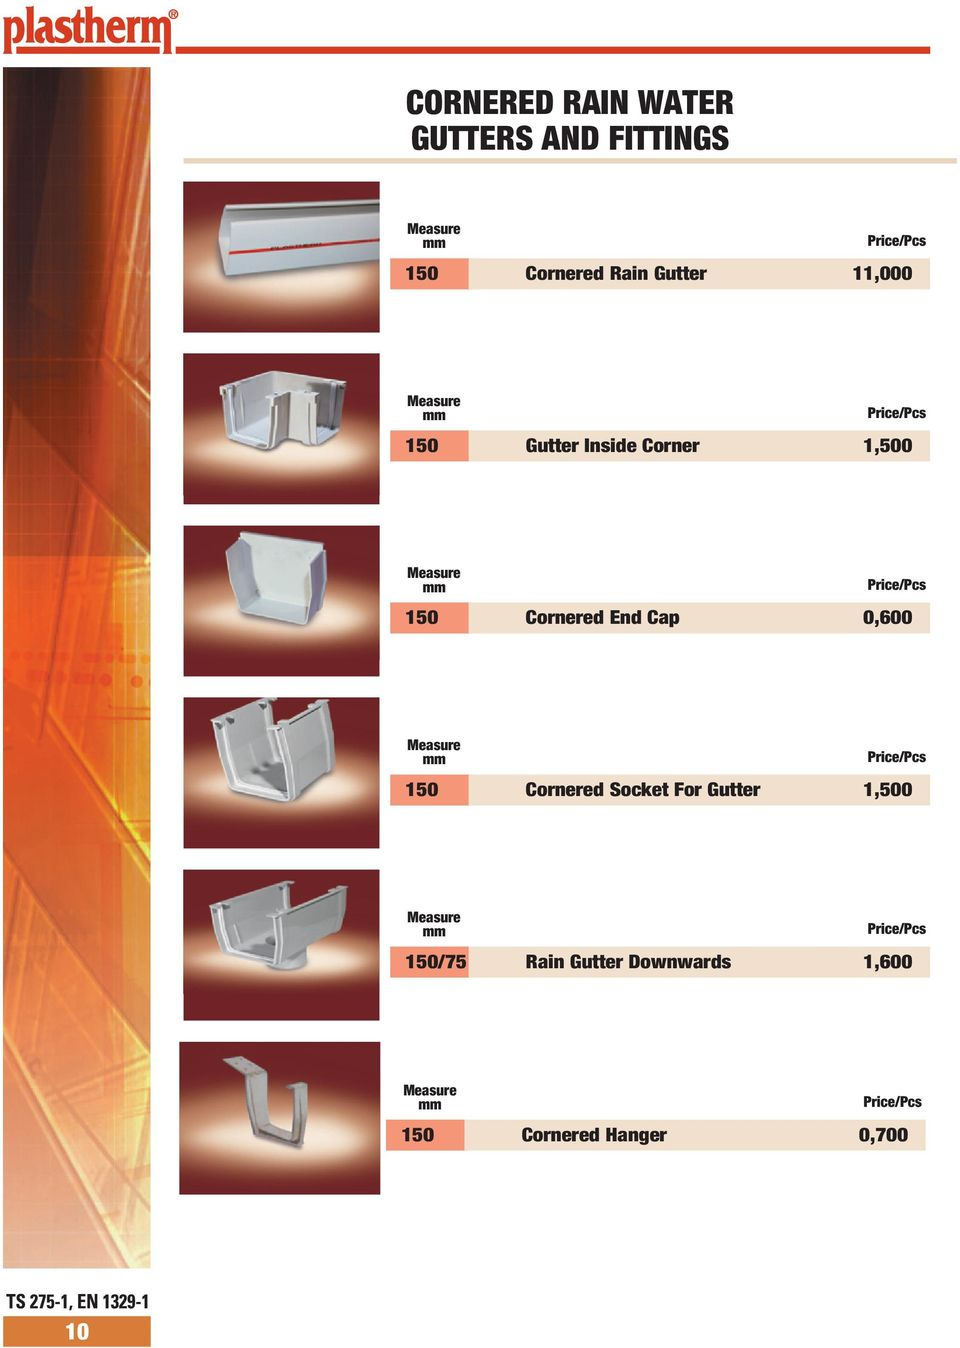 Cornered End Cap 0,600 Price/Pcs 1 Cornered Socket For Gutter 1,0